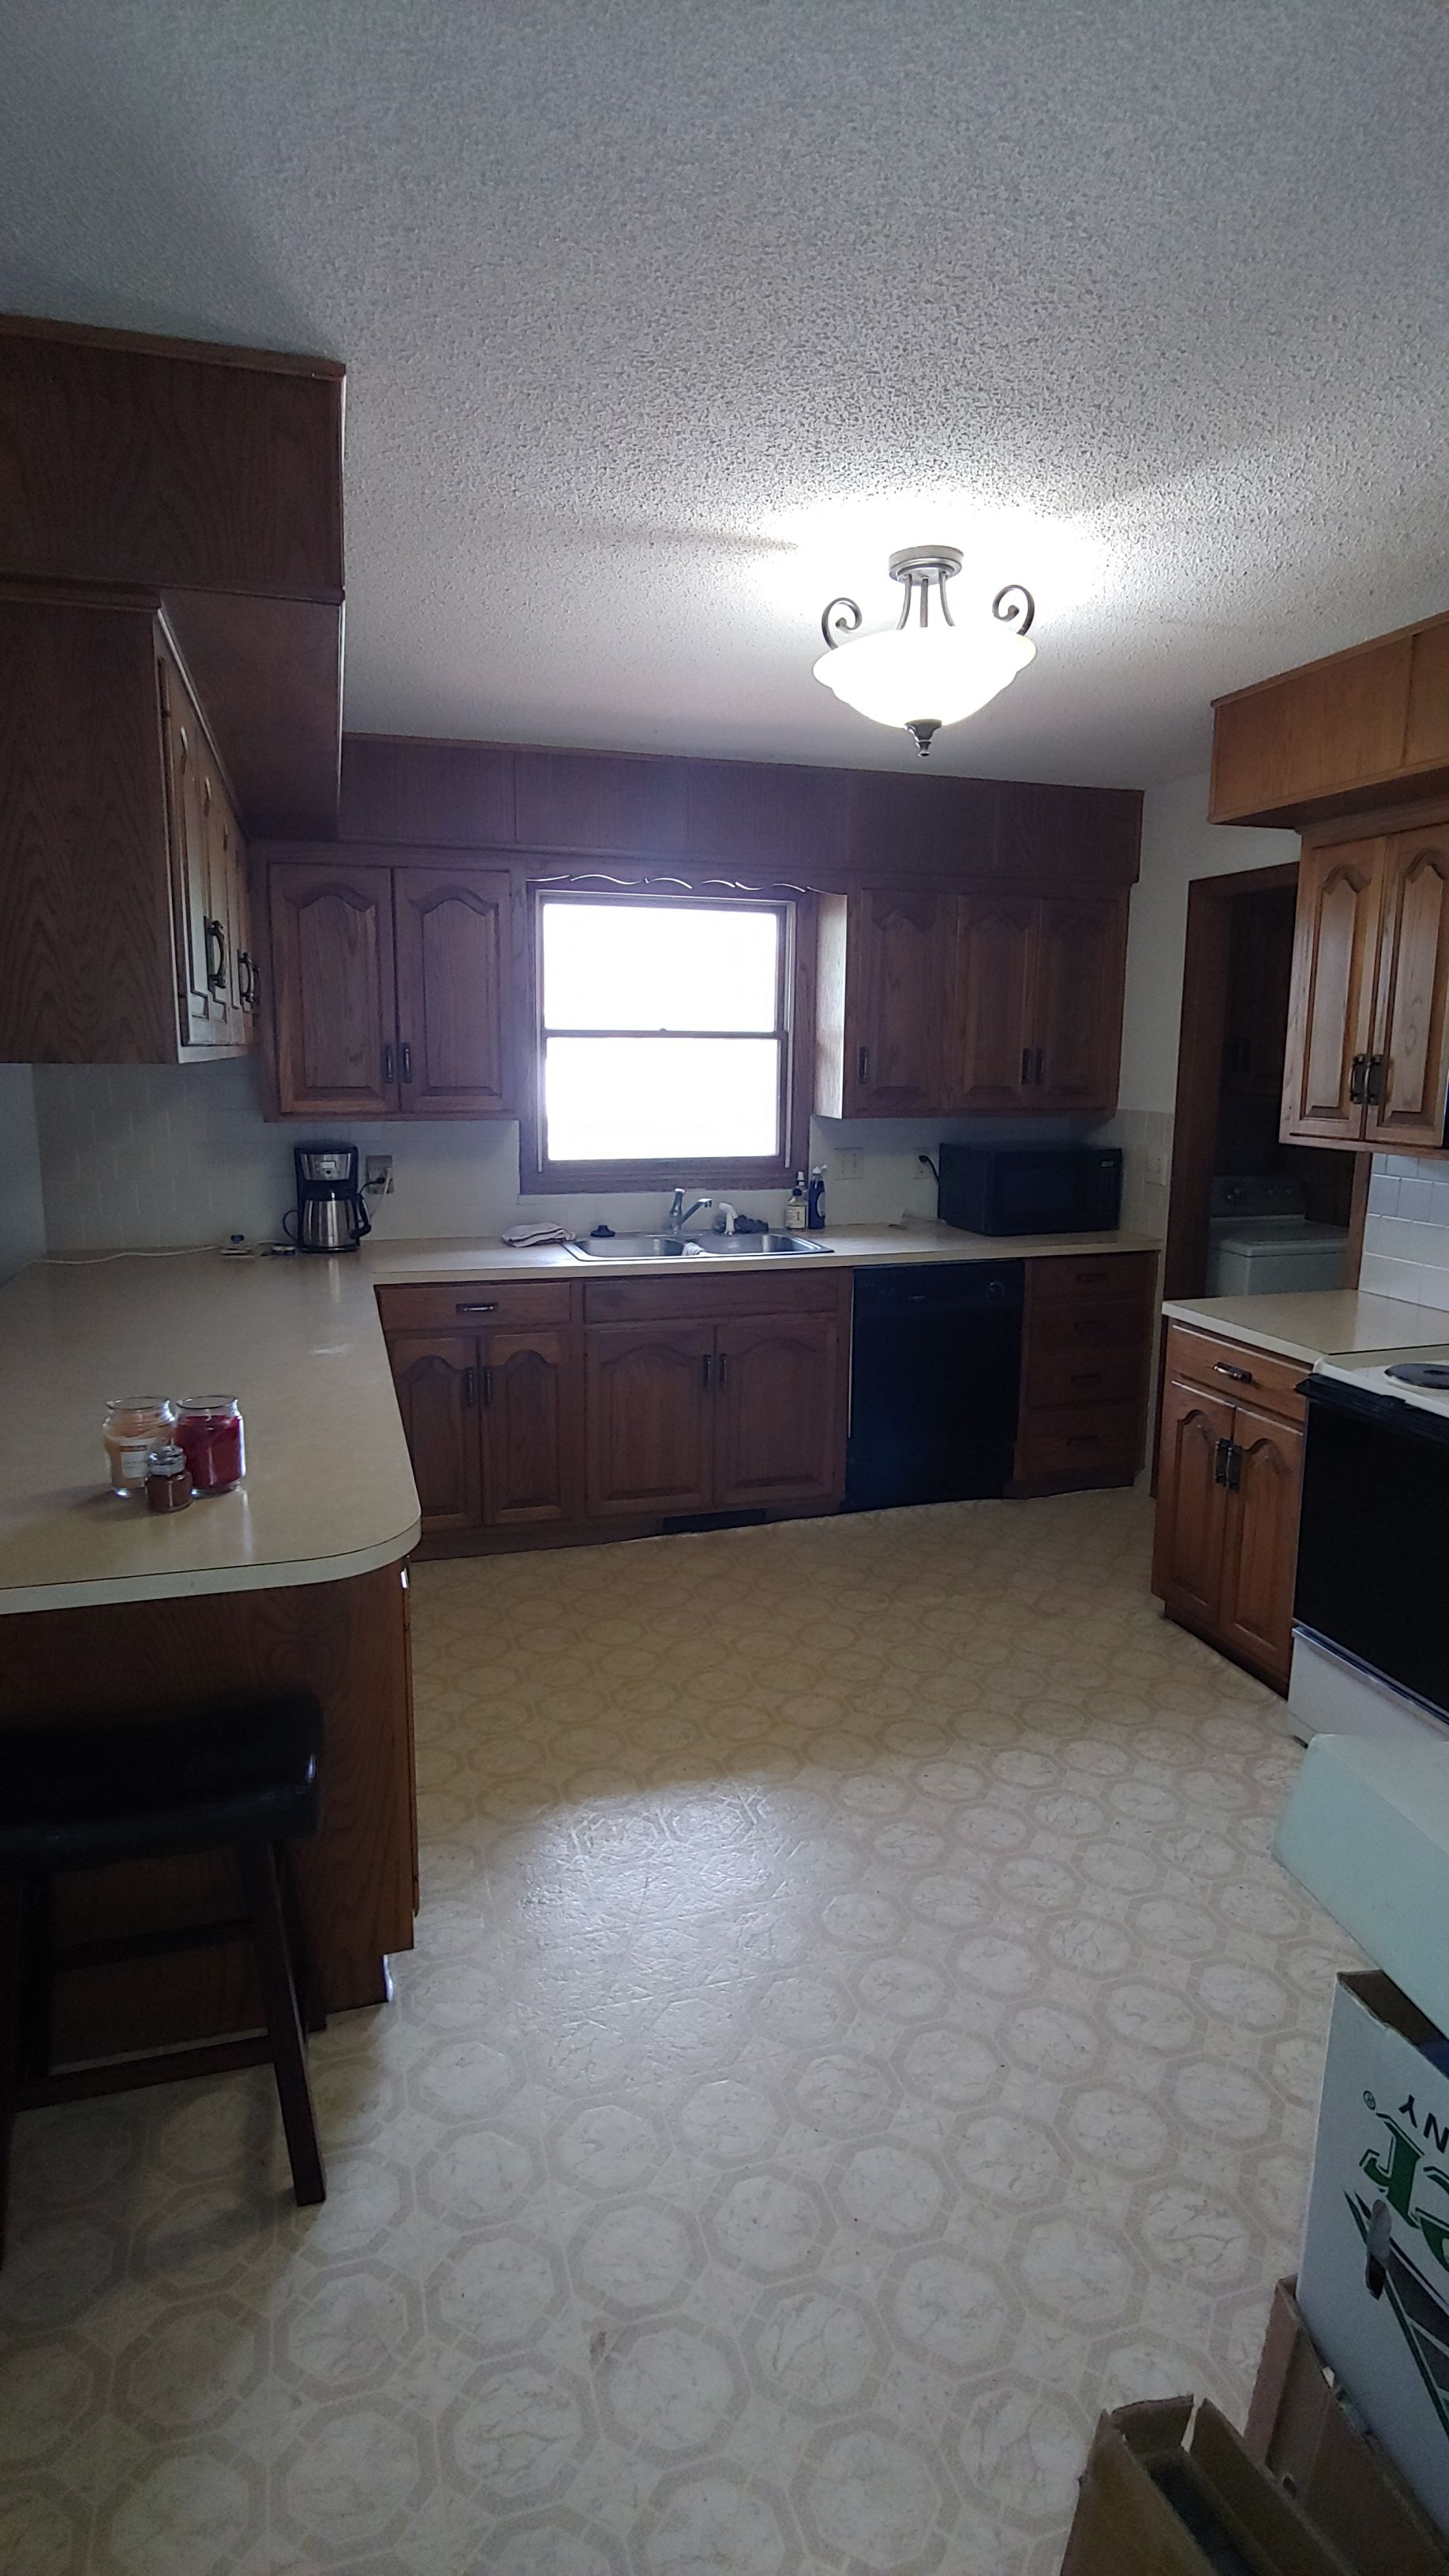 Item 21 in Real Estate and Personal Property Auction gallery